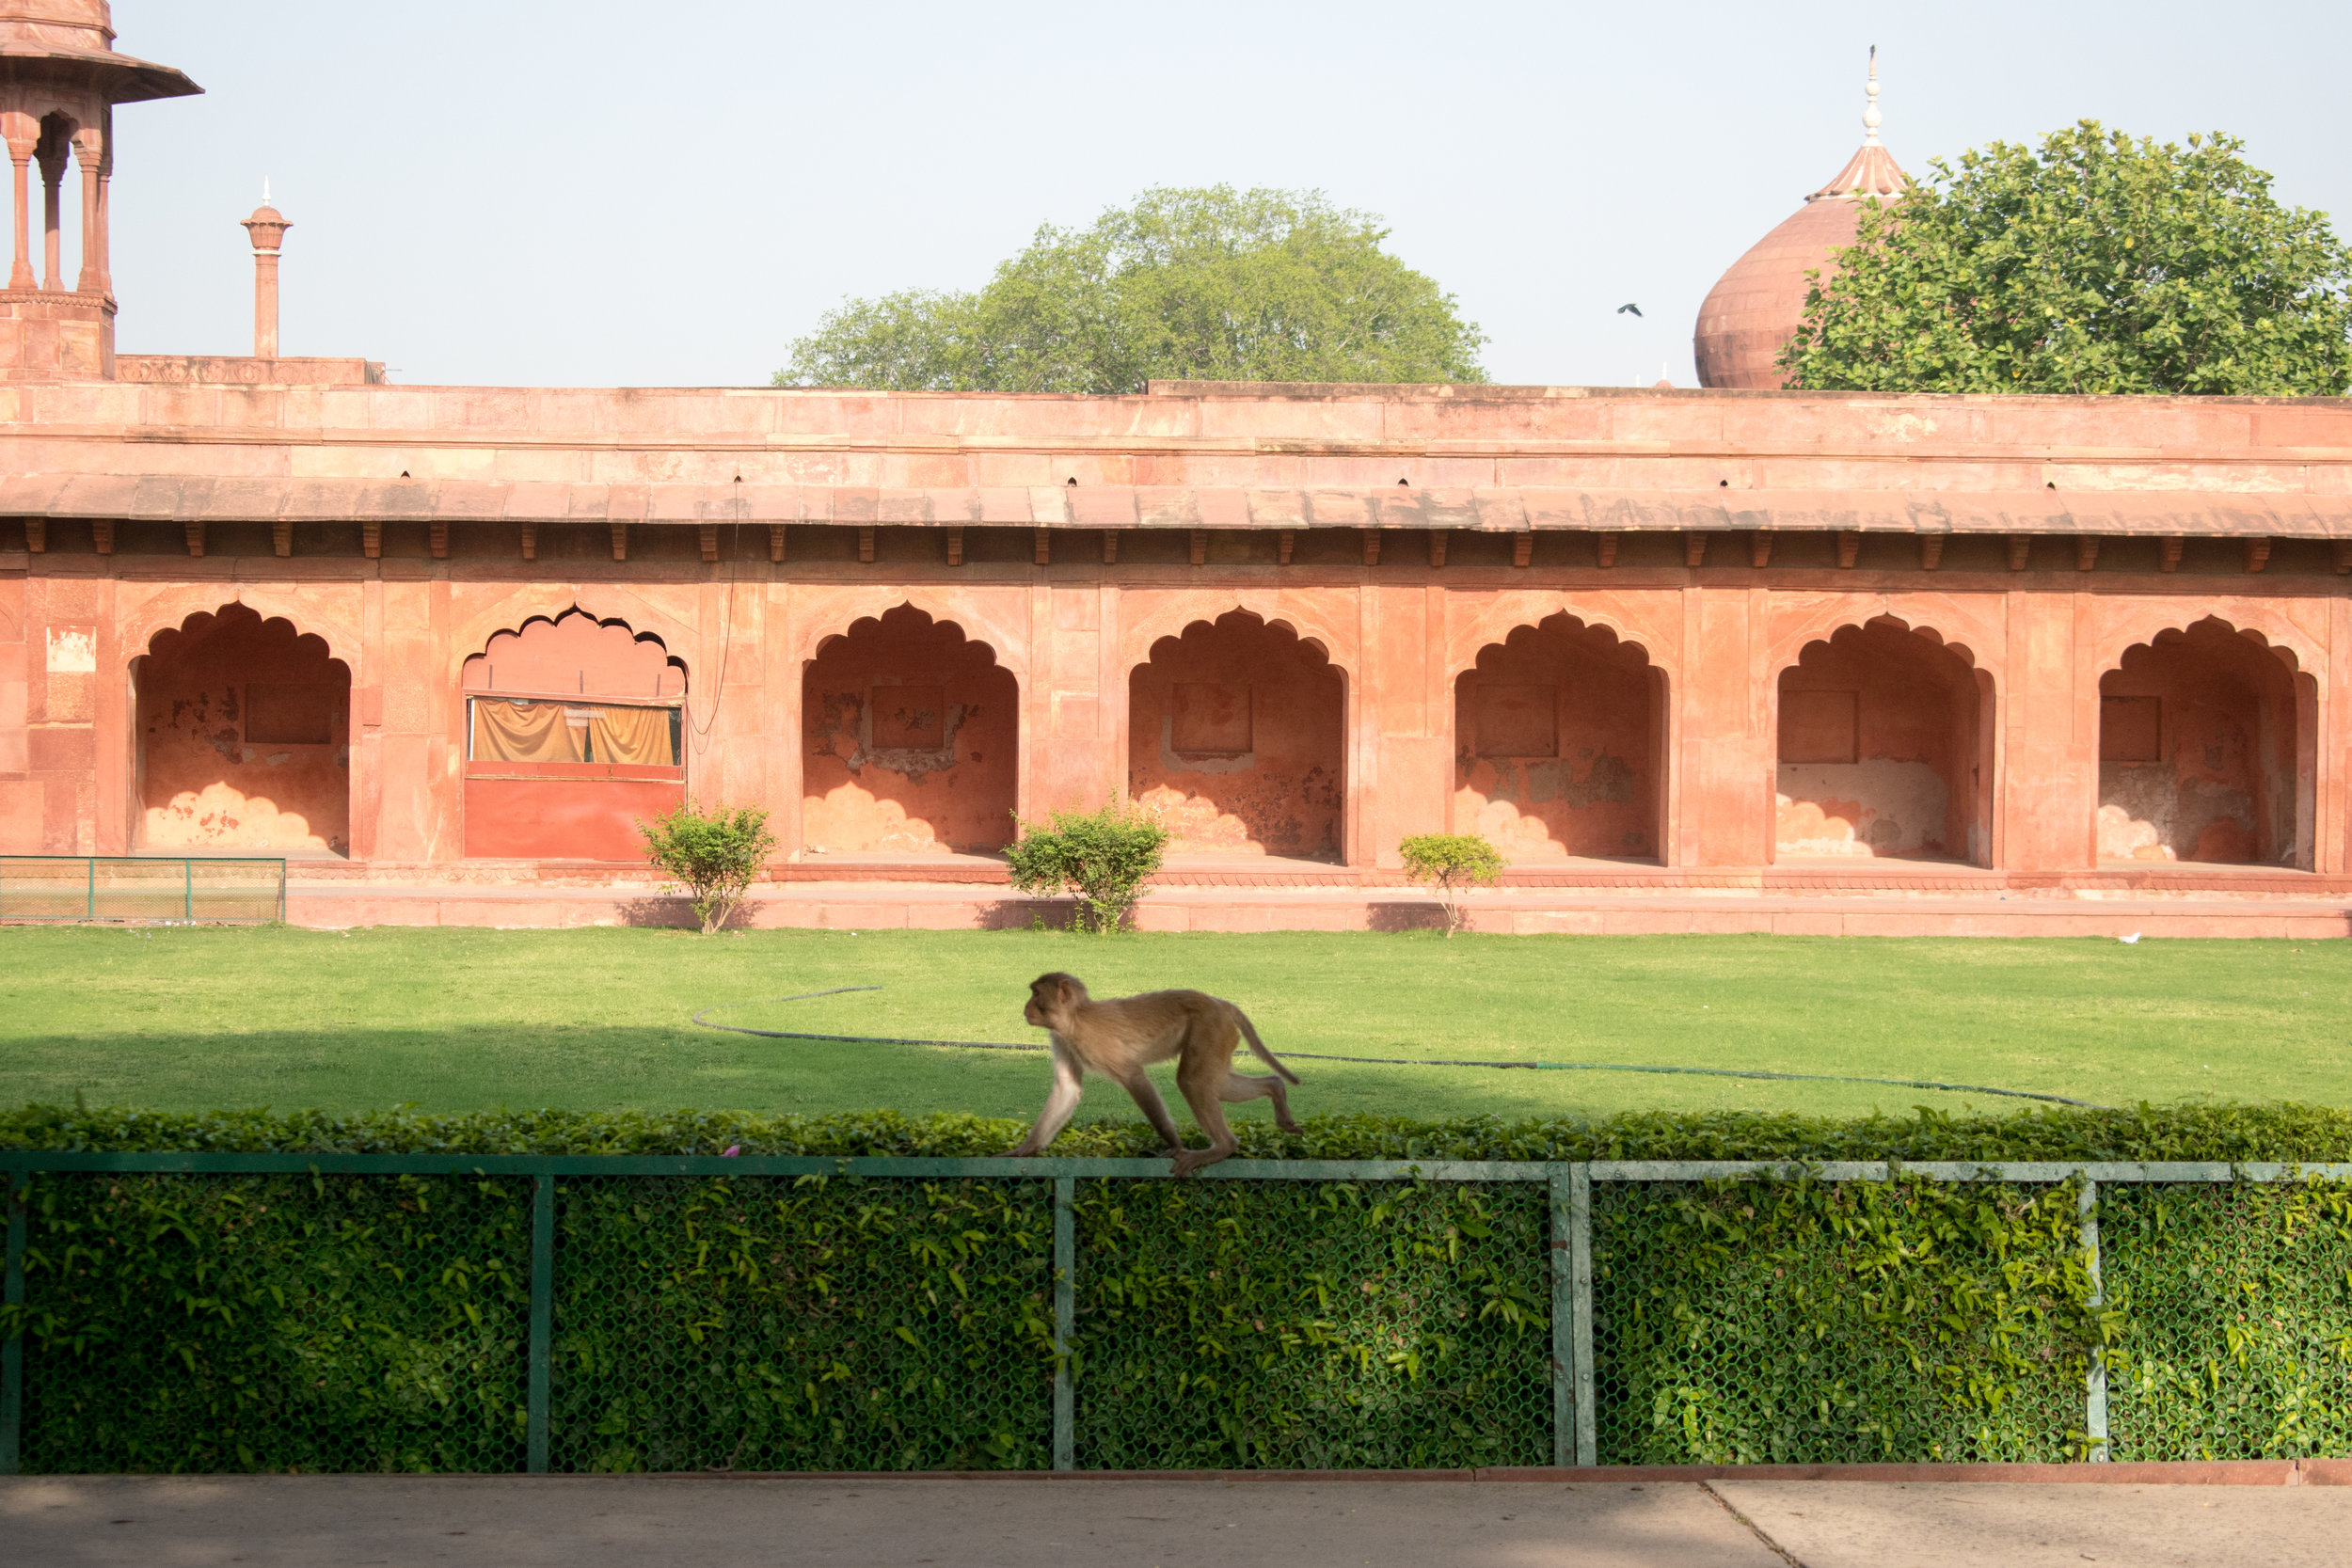 A Monkey Guards The Entrance, Agra in India